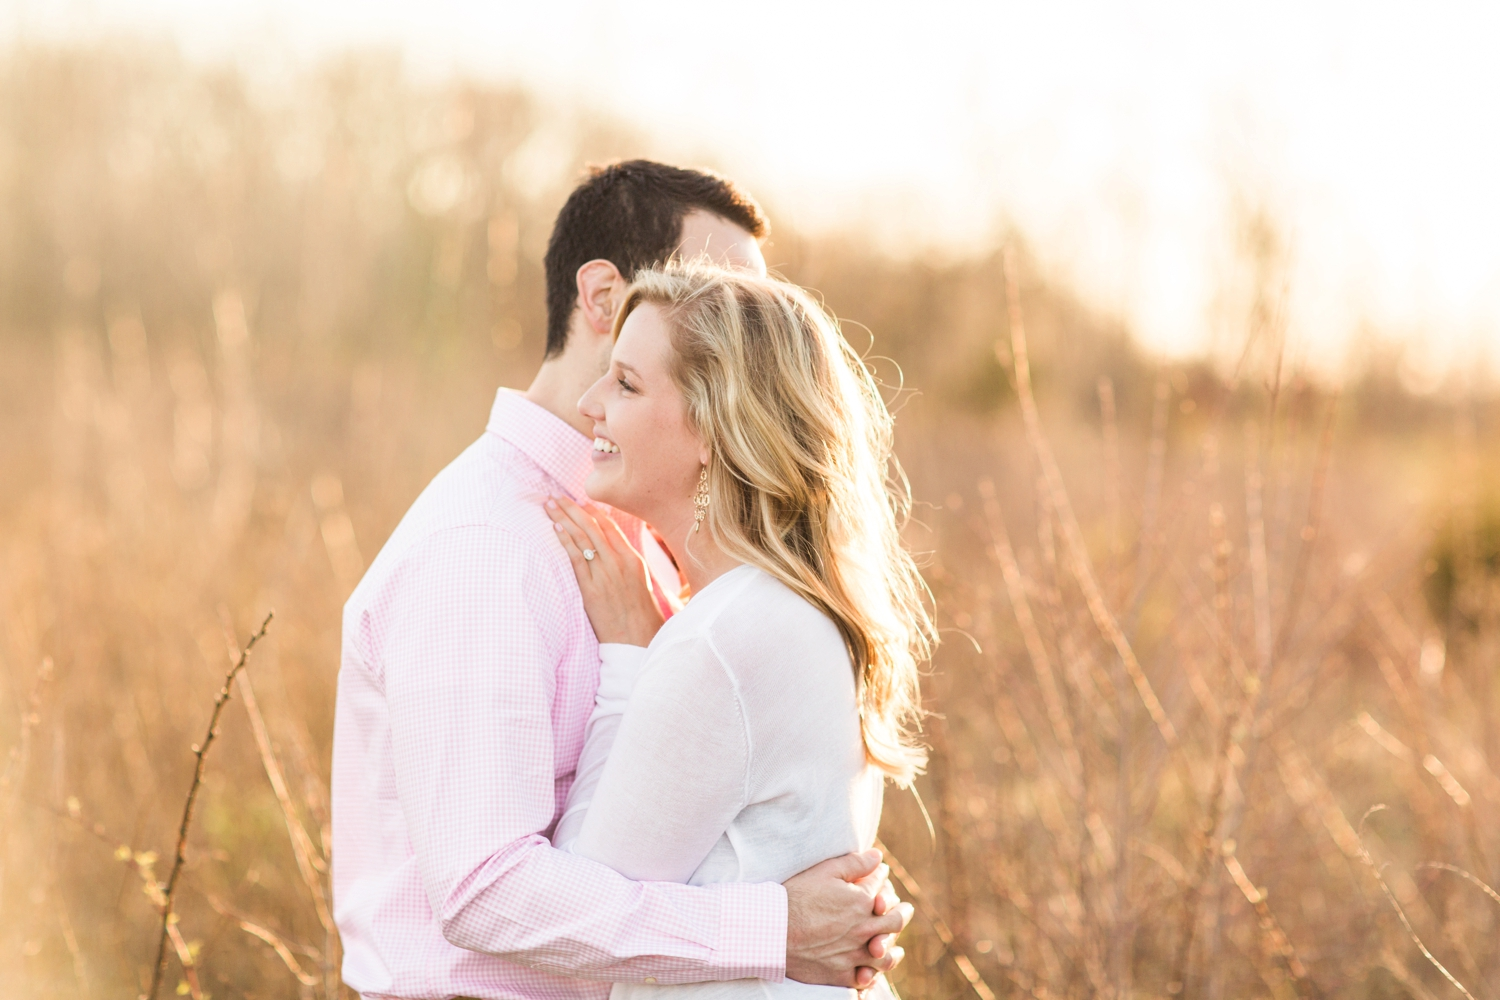 indianapolis_wedding_photographer_golden_hour_engagement_chloe_luka_photography_6131.jpg